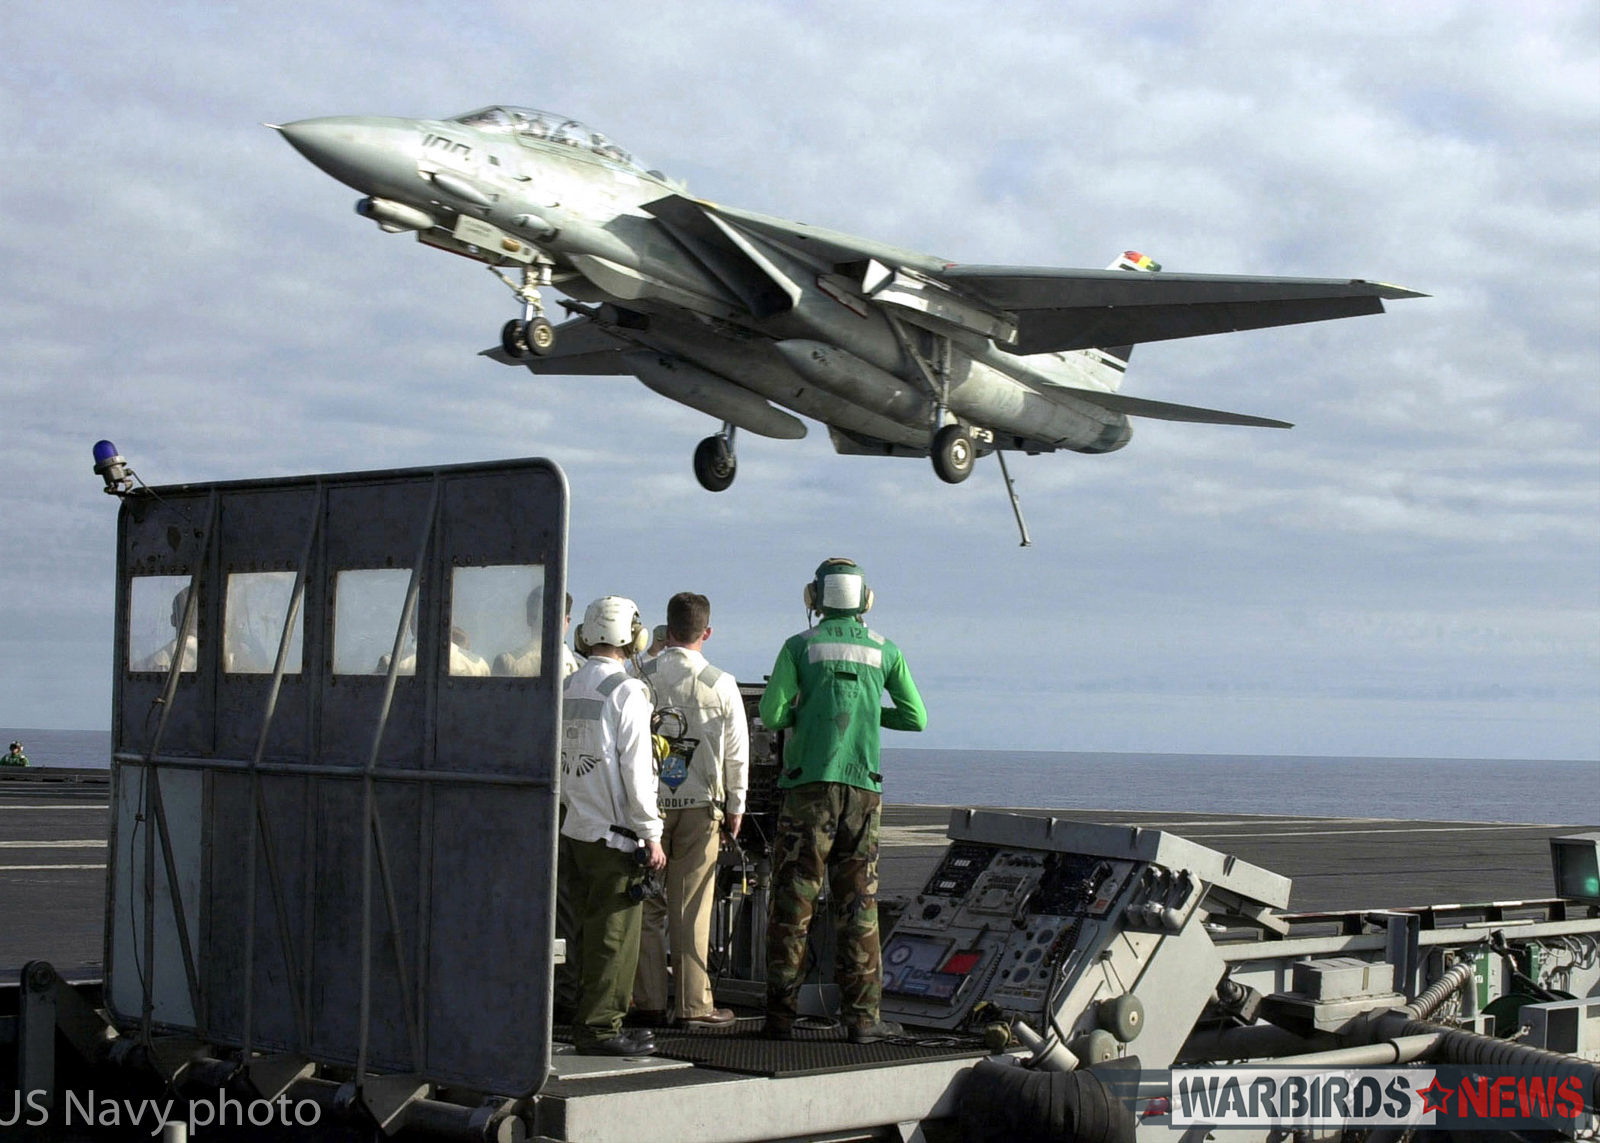 """Aboard USS Abraham Lincoln (Jan. 26, 2001) -- An F-14D """"Tomcat"""" from the """"Tomcatters"""" of Fighter Squadron Three One (VF-31) flies over the Landing Signal Officer (LSO) platform aboard USS Abraham Lincoln (CVN 72) after returning from a successful proficiency flight. The Lincoln is on her final leg of a scheduled six-month deployment to the Arabian Gulf in support of Operation Southern Watch. U.S. Navy photo by Photographer's Mate 2nd Class Daniel Wolsey. (RELEASED)"""